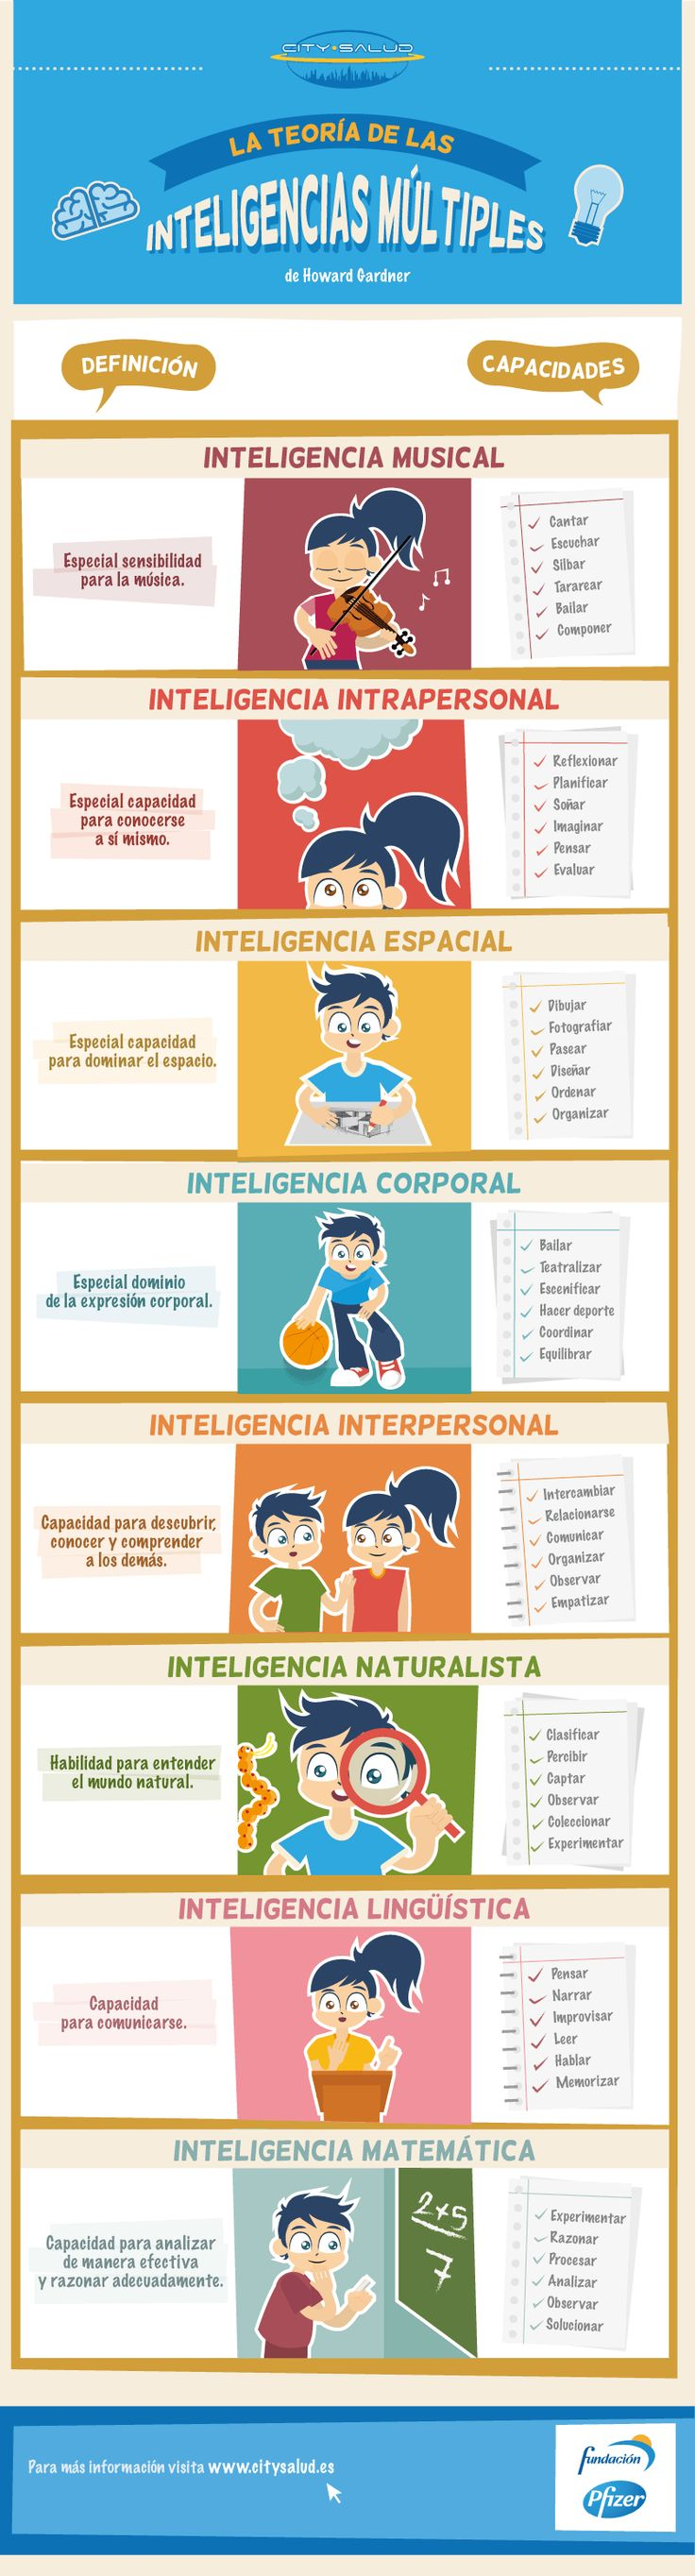 Las Inteligencias Múltiples Howard Gardner.